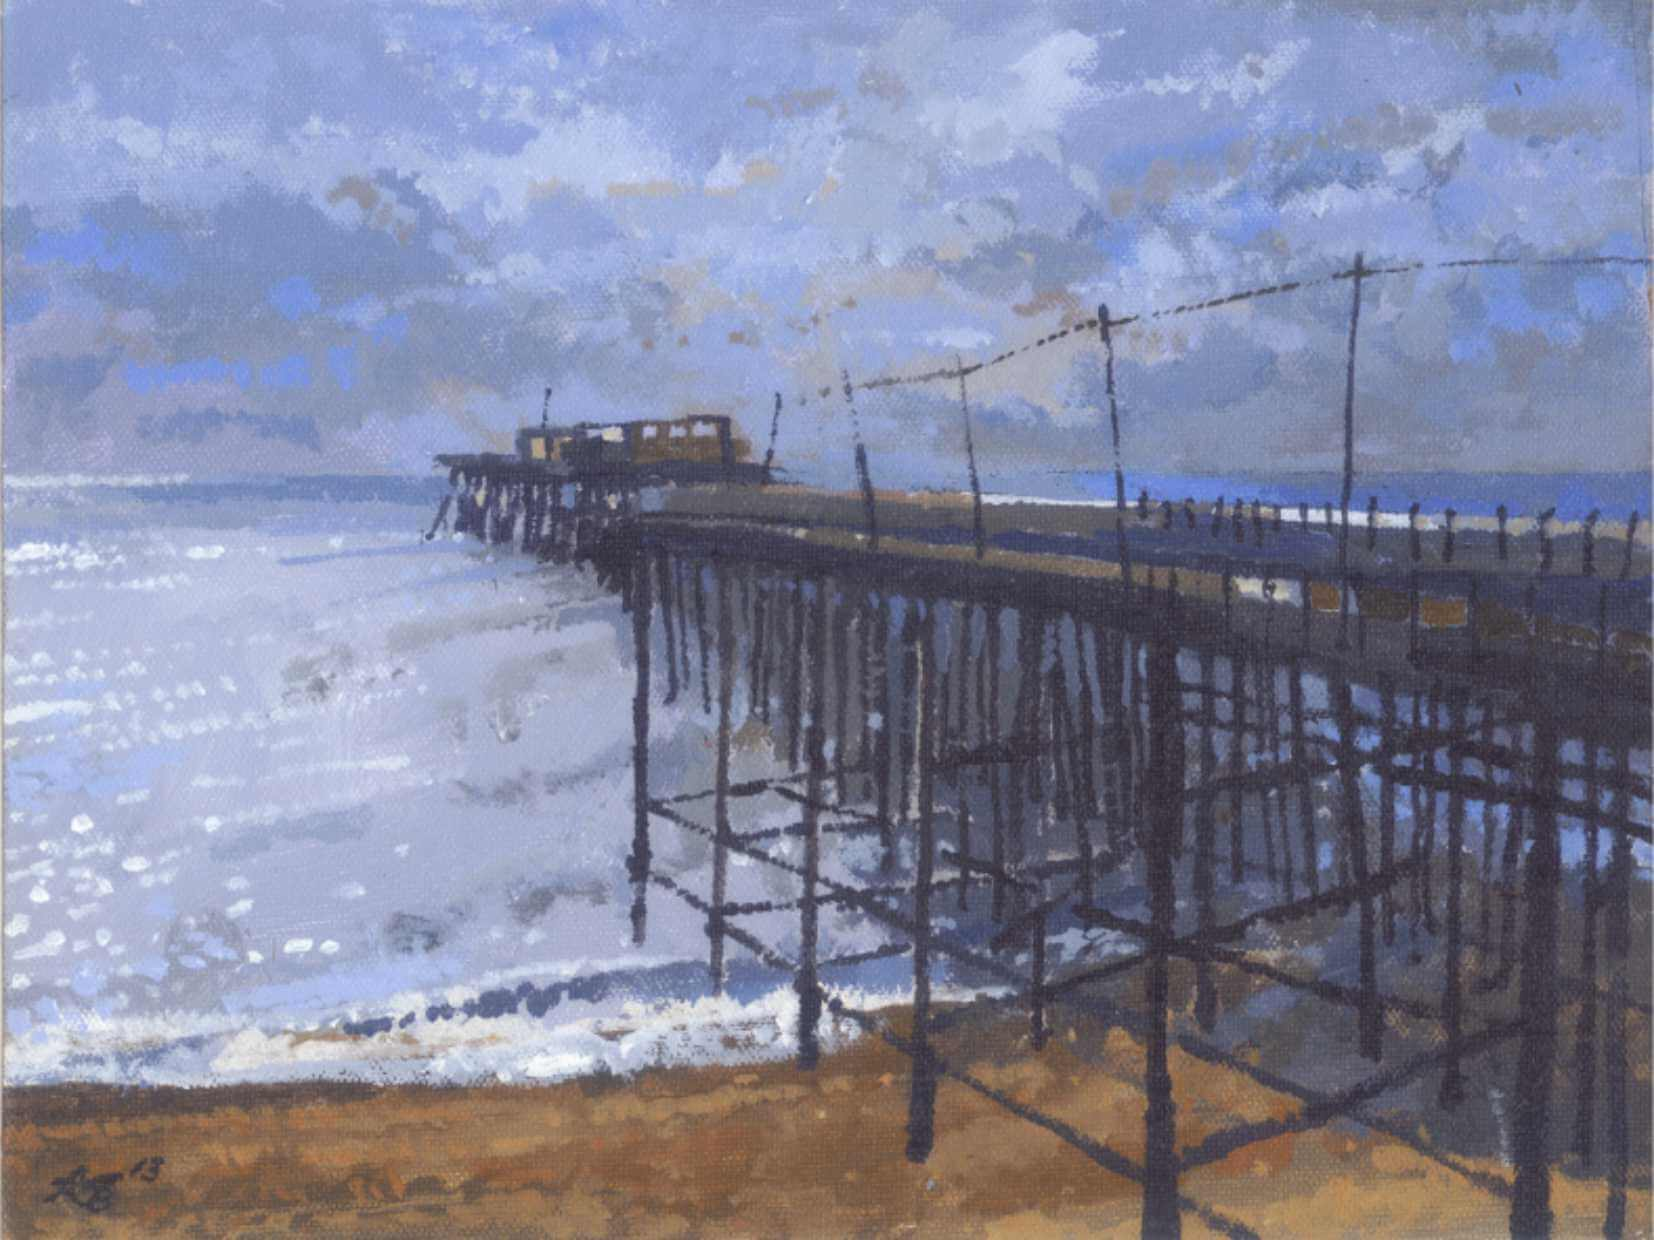 2012 Hastings Pier by Moonlight (study)